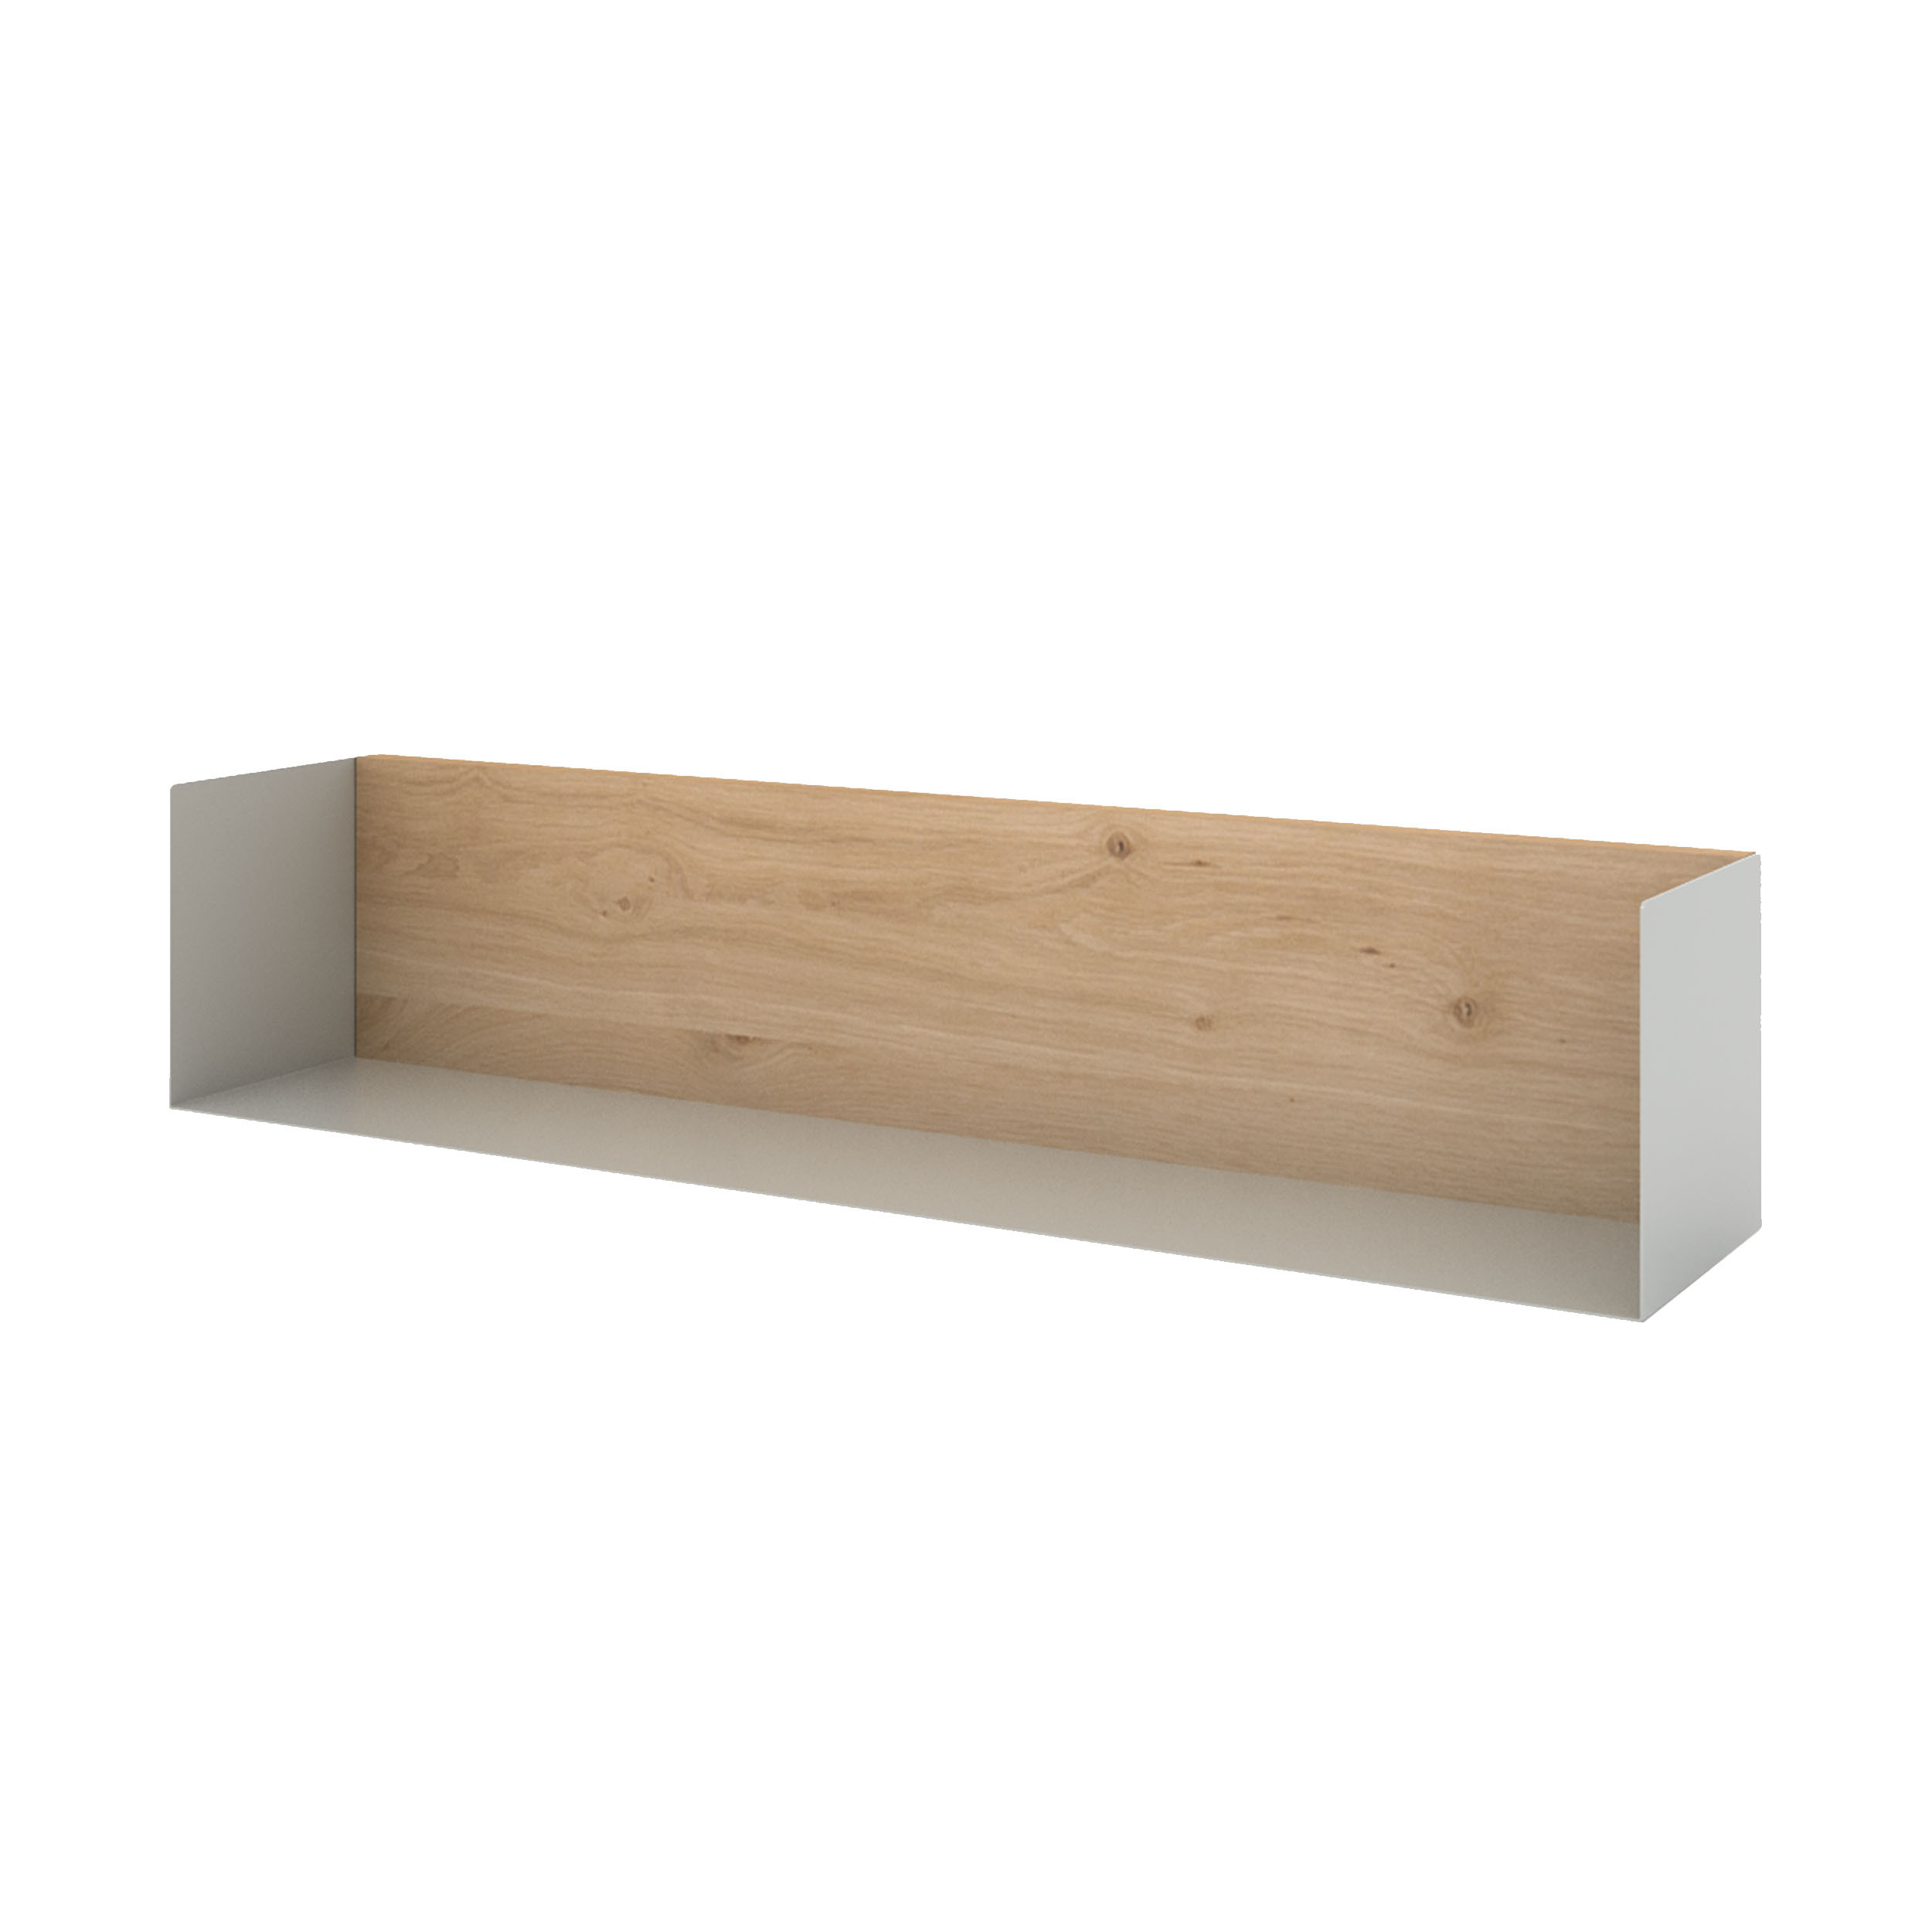 Regal Shelfy U Shelf Regal A046488 008 Online Kaufen Bei Woonio